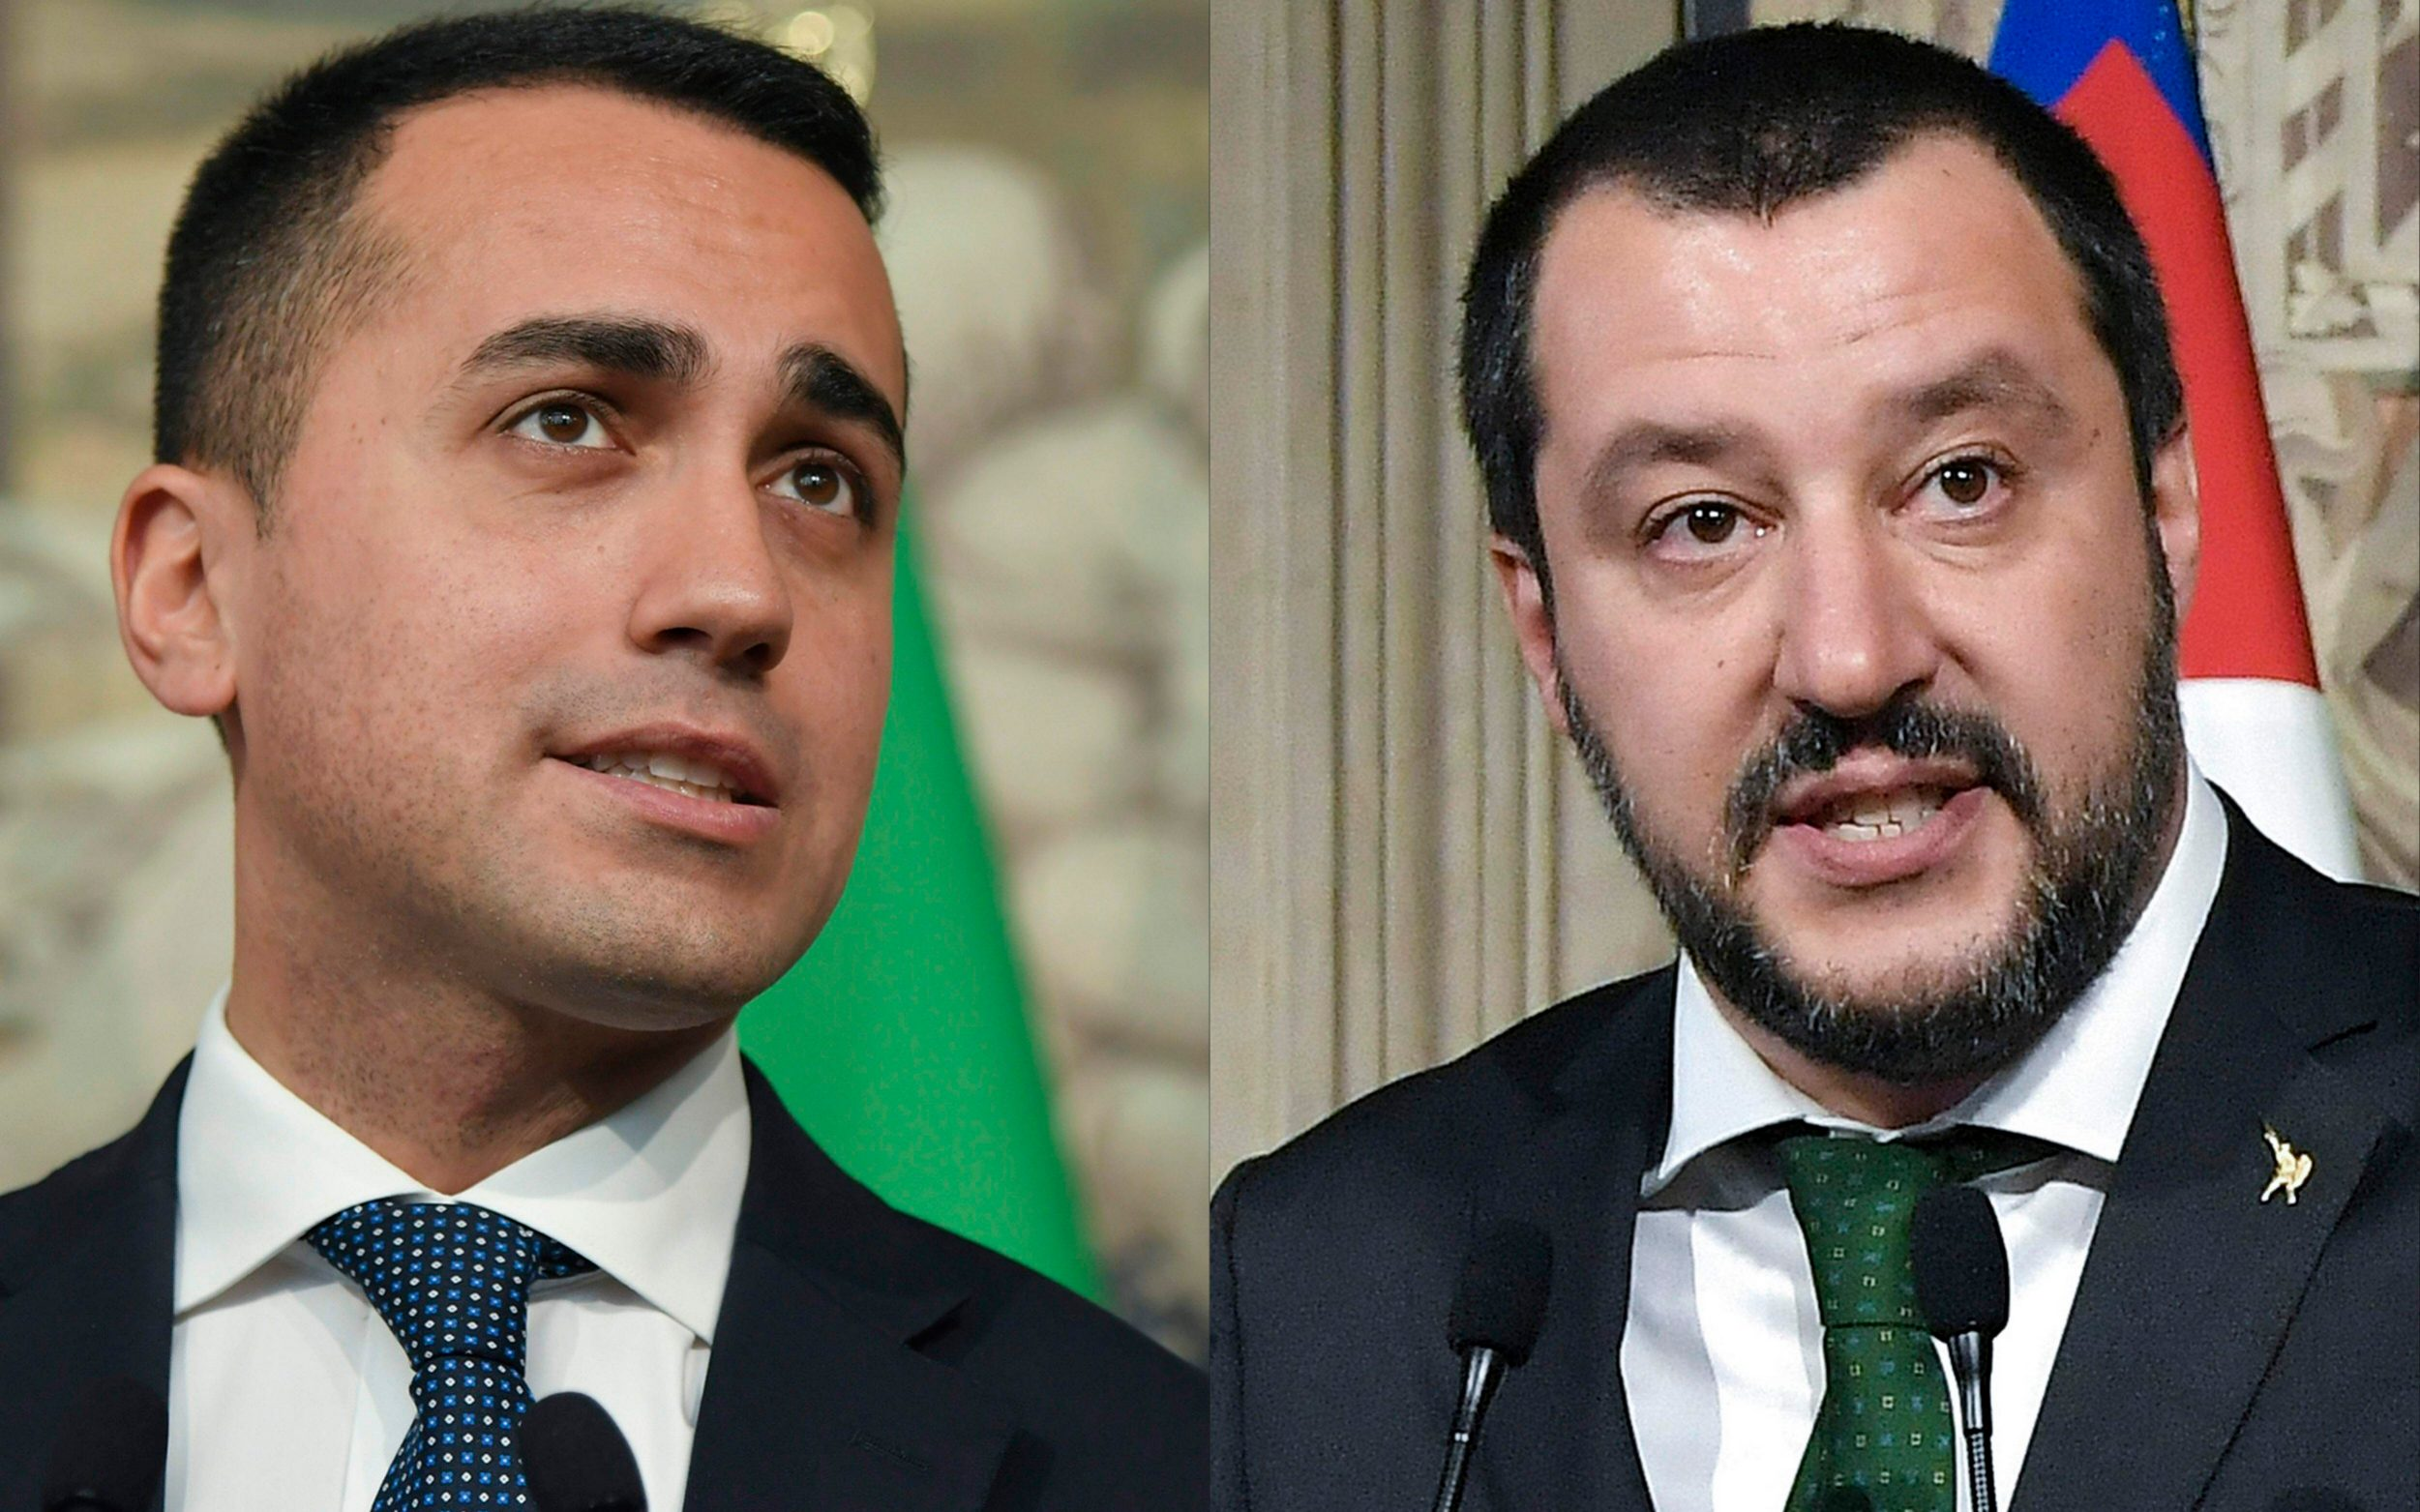 France and Italy may become arch rivals due to arrogance of President Macron, warn senior Italian leaders